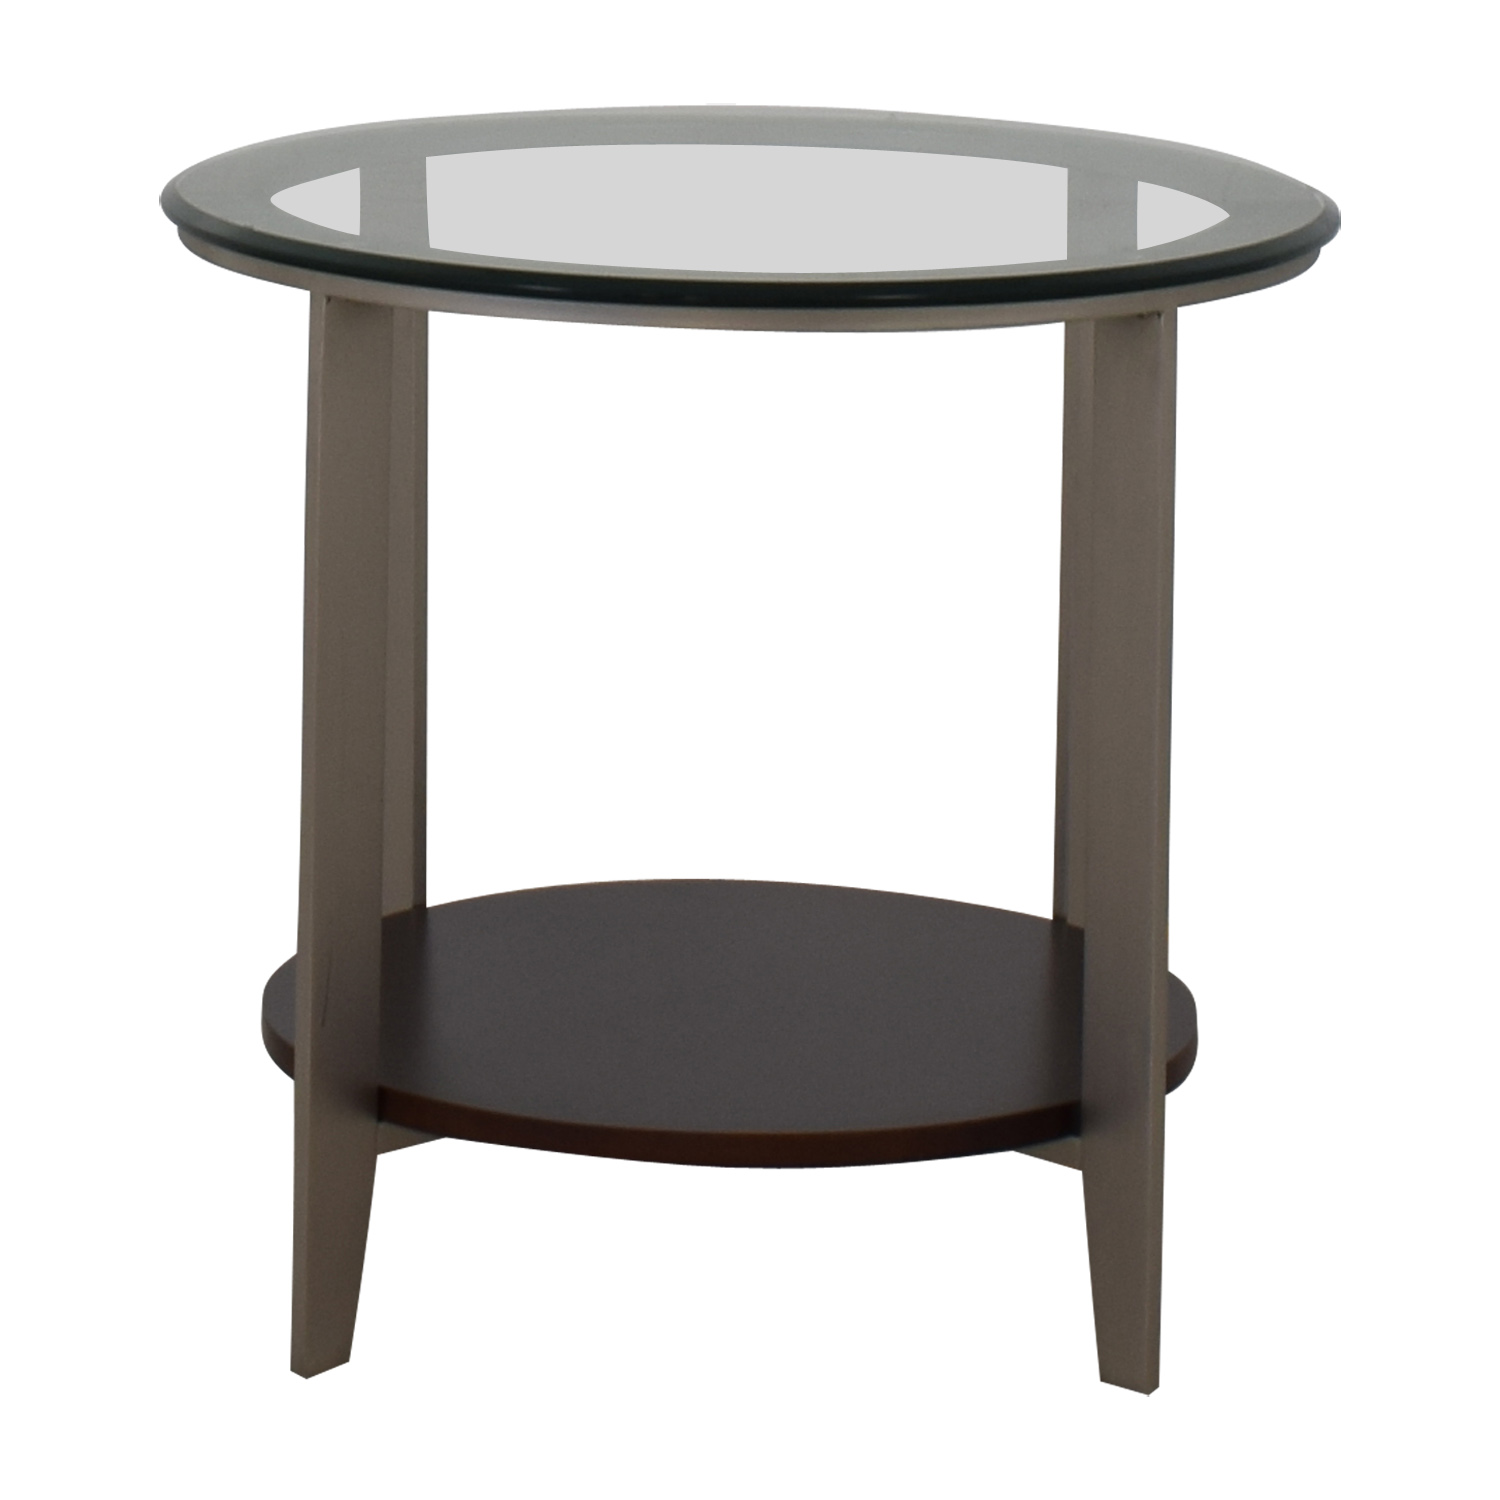 buy Ethan Allen Ethan Allen Elements Glass Top End Table online